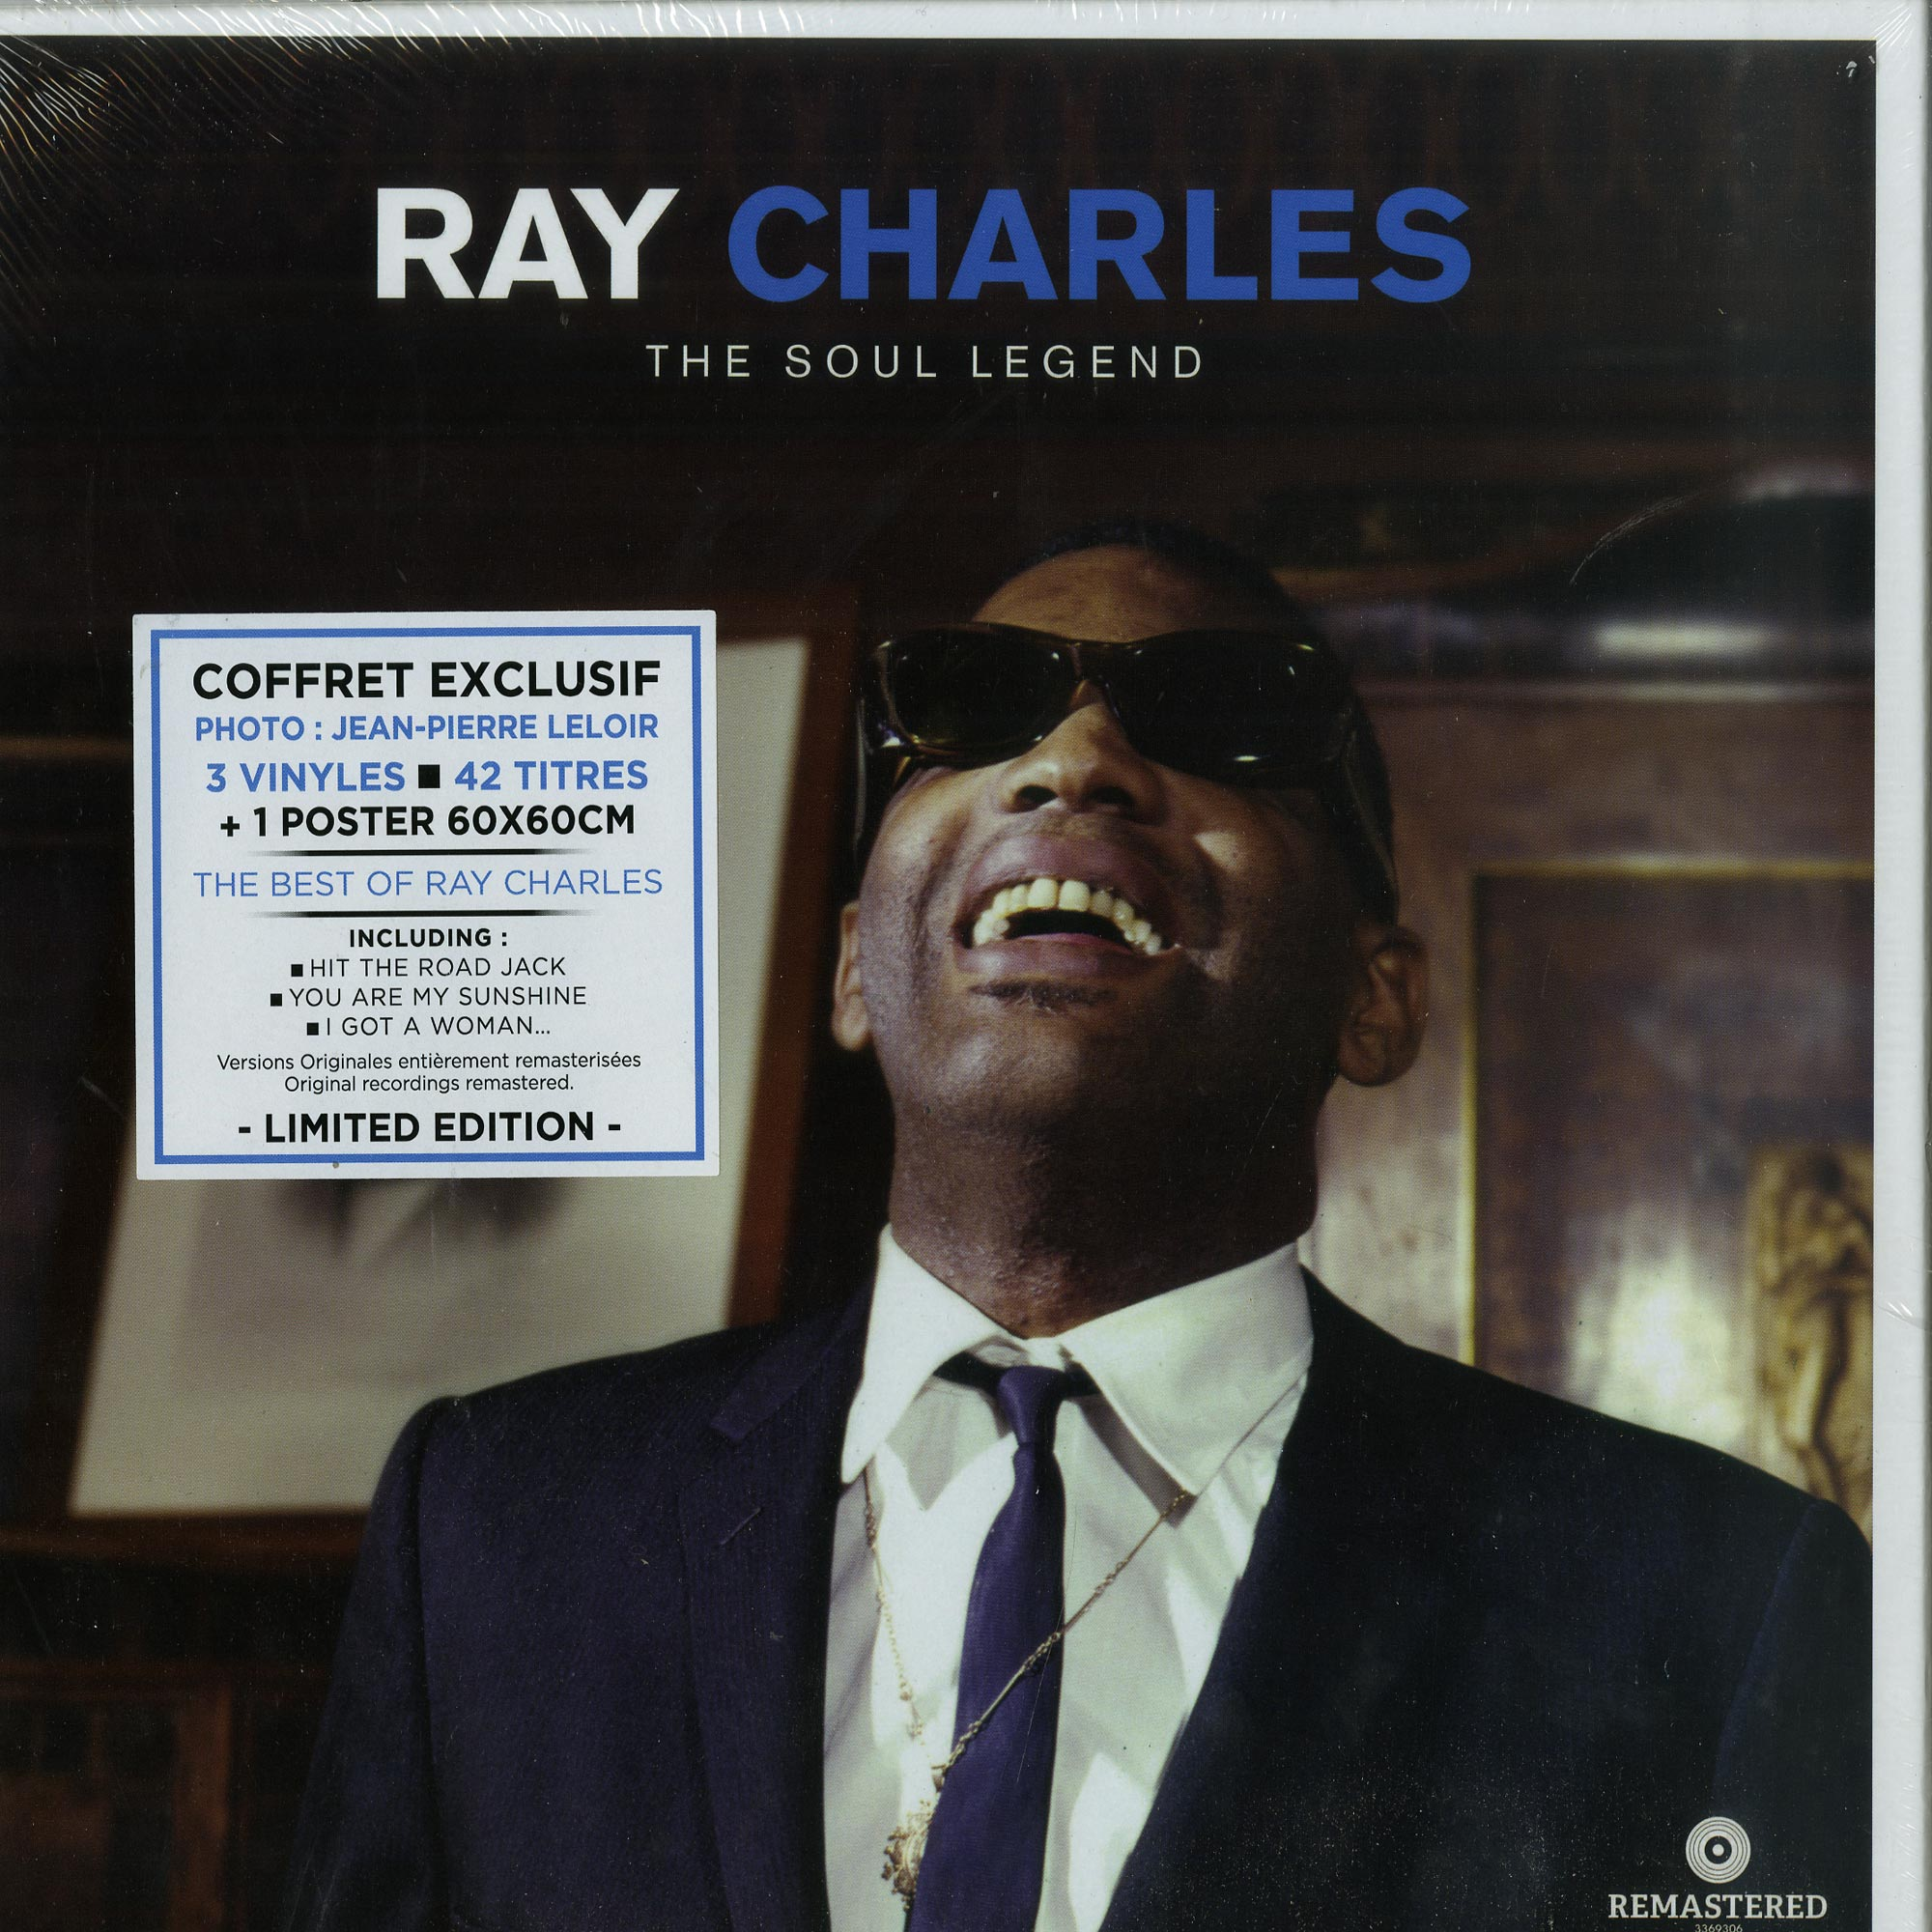 Ray Charles - THE SOUL LEGEND BOX